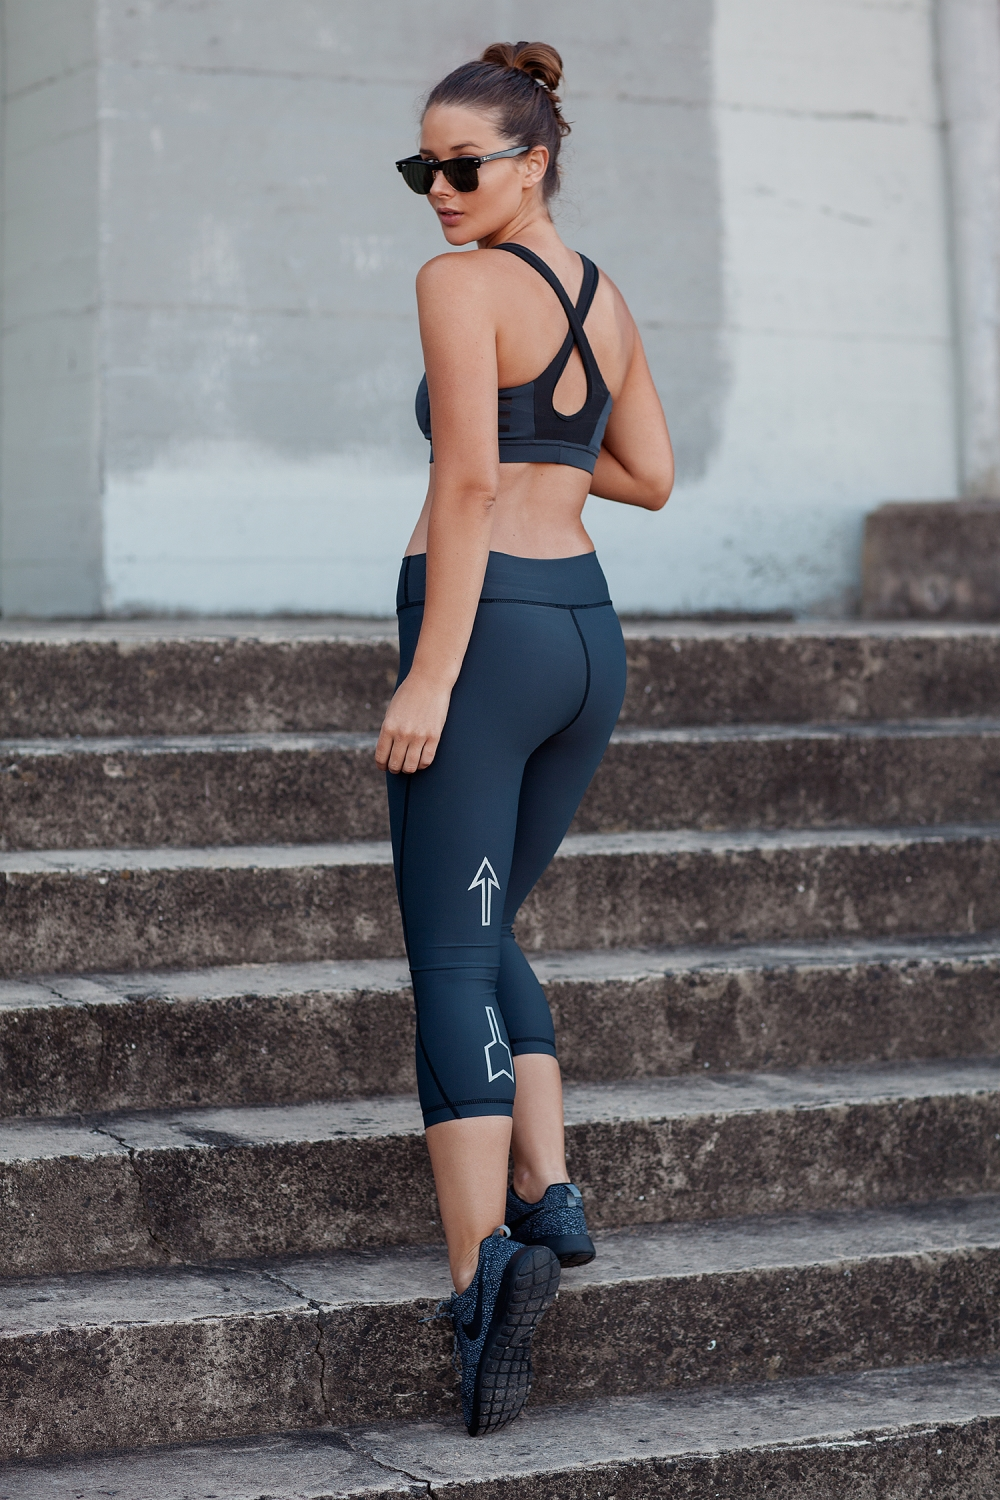 harper and harley-activewear-gym-workout-fitness-style runner-theupside-4